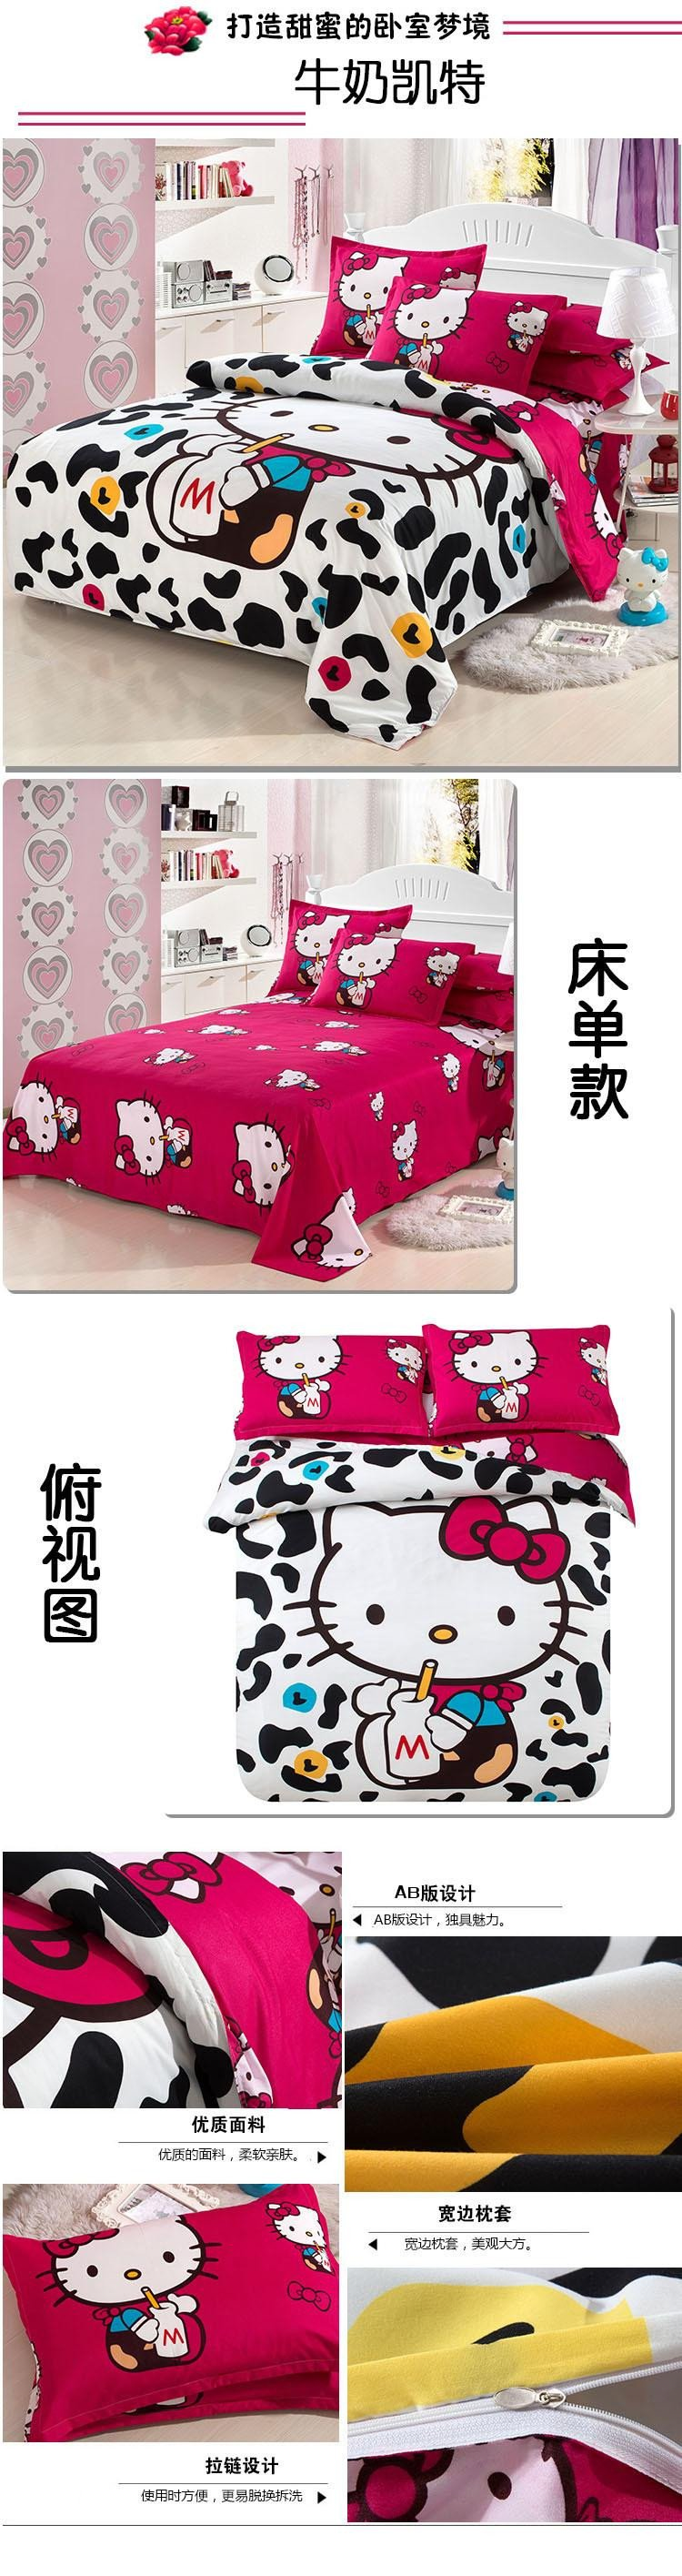 Hello Kitty Bedroom In A Box Fresh Cotton Hello Kitty Home Textile Reactive Print Bedding Sets Cartoon Bed Sheet Duvet Cover Set Bedding Set Pink Duvet forters and Bedding From